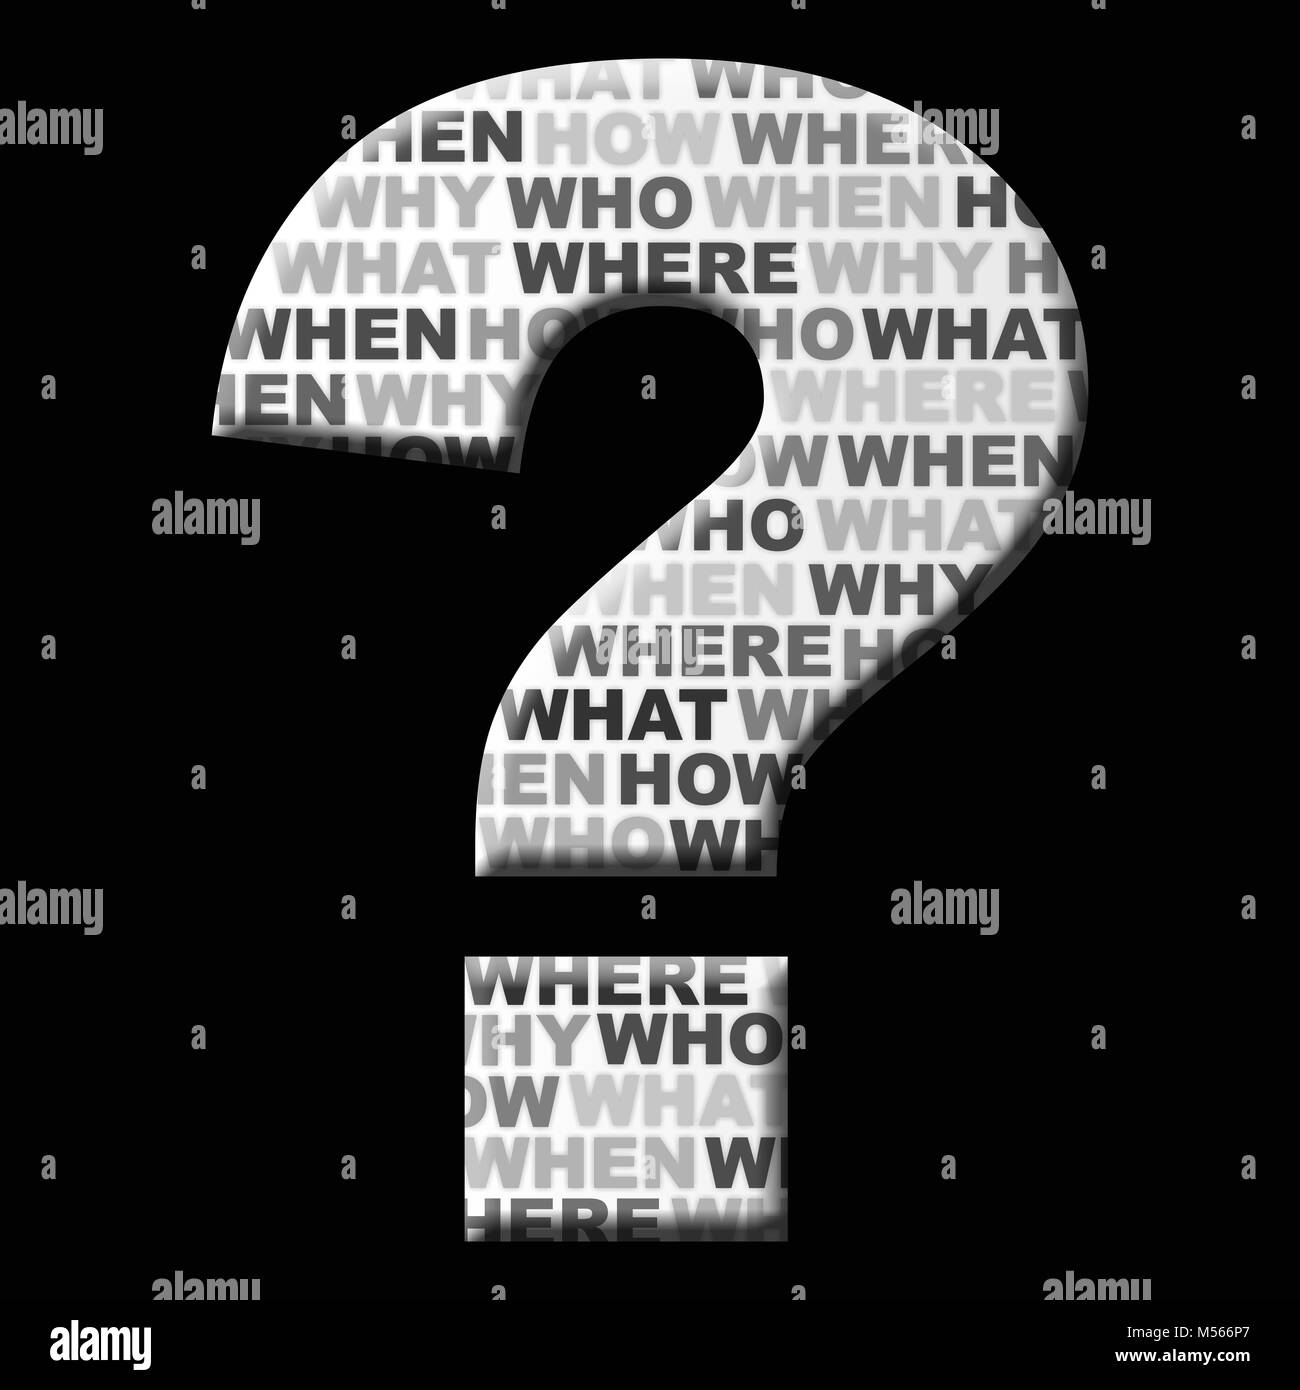 Question mark icon on black background - Stock Image